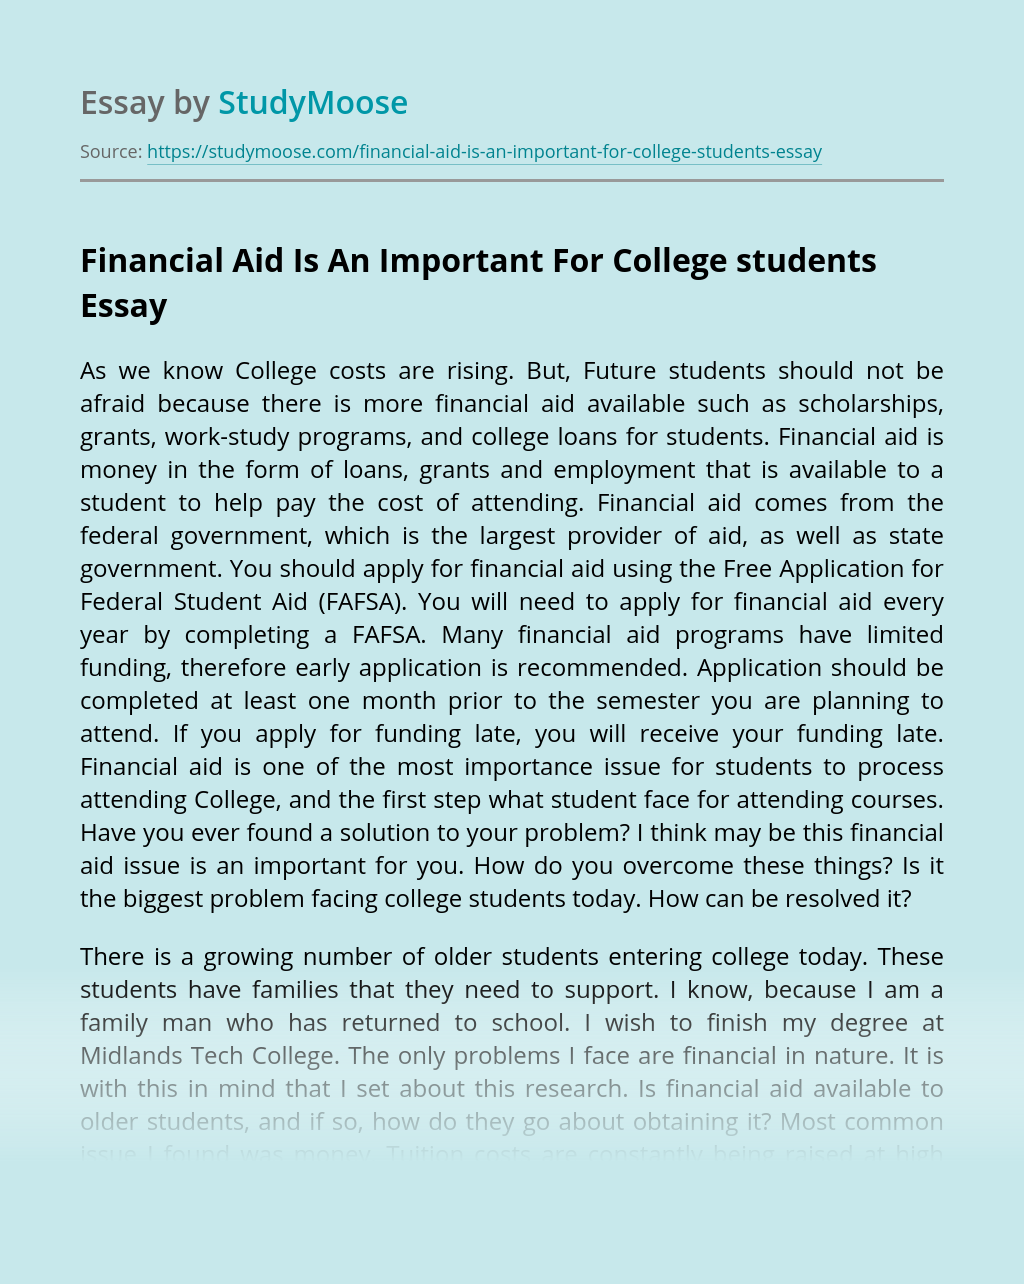 Financial Aid Is An Important For College students